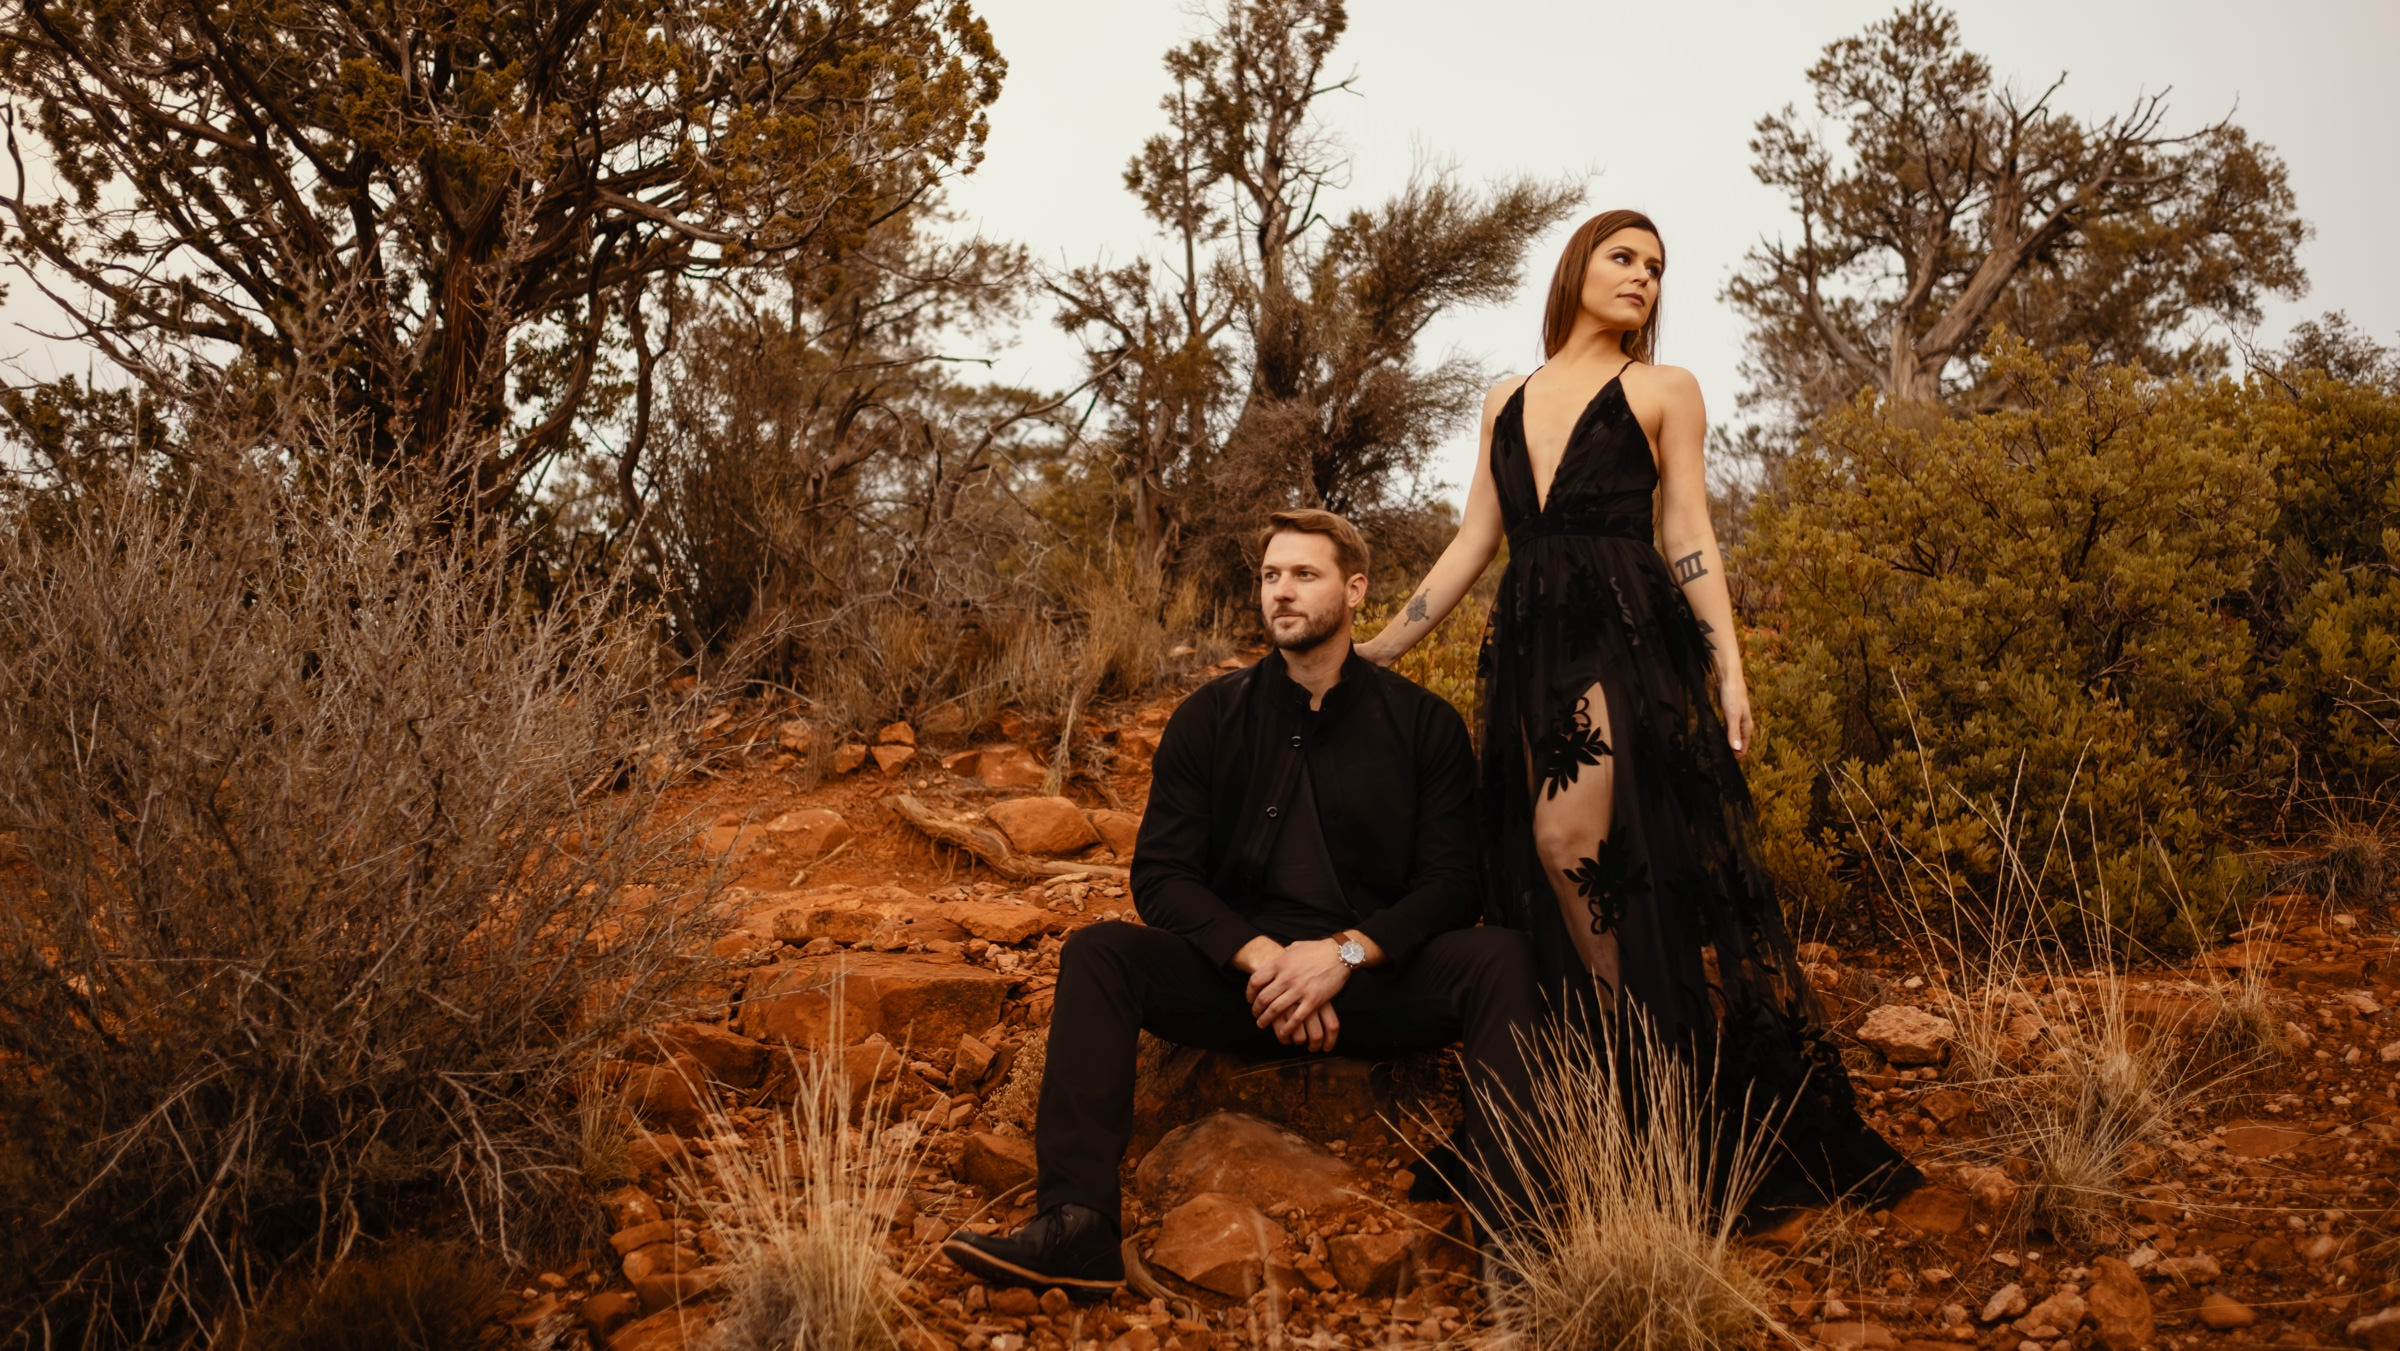 Engagement photo of couple with woman wearing black dress by Dark Roux, Austin, Texas